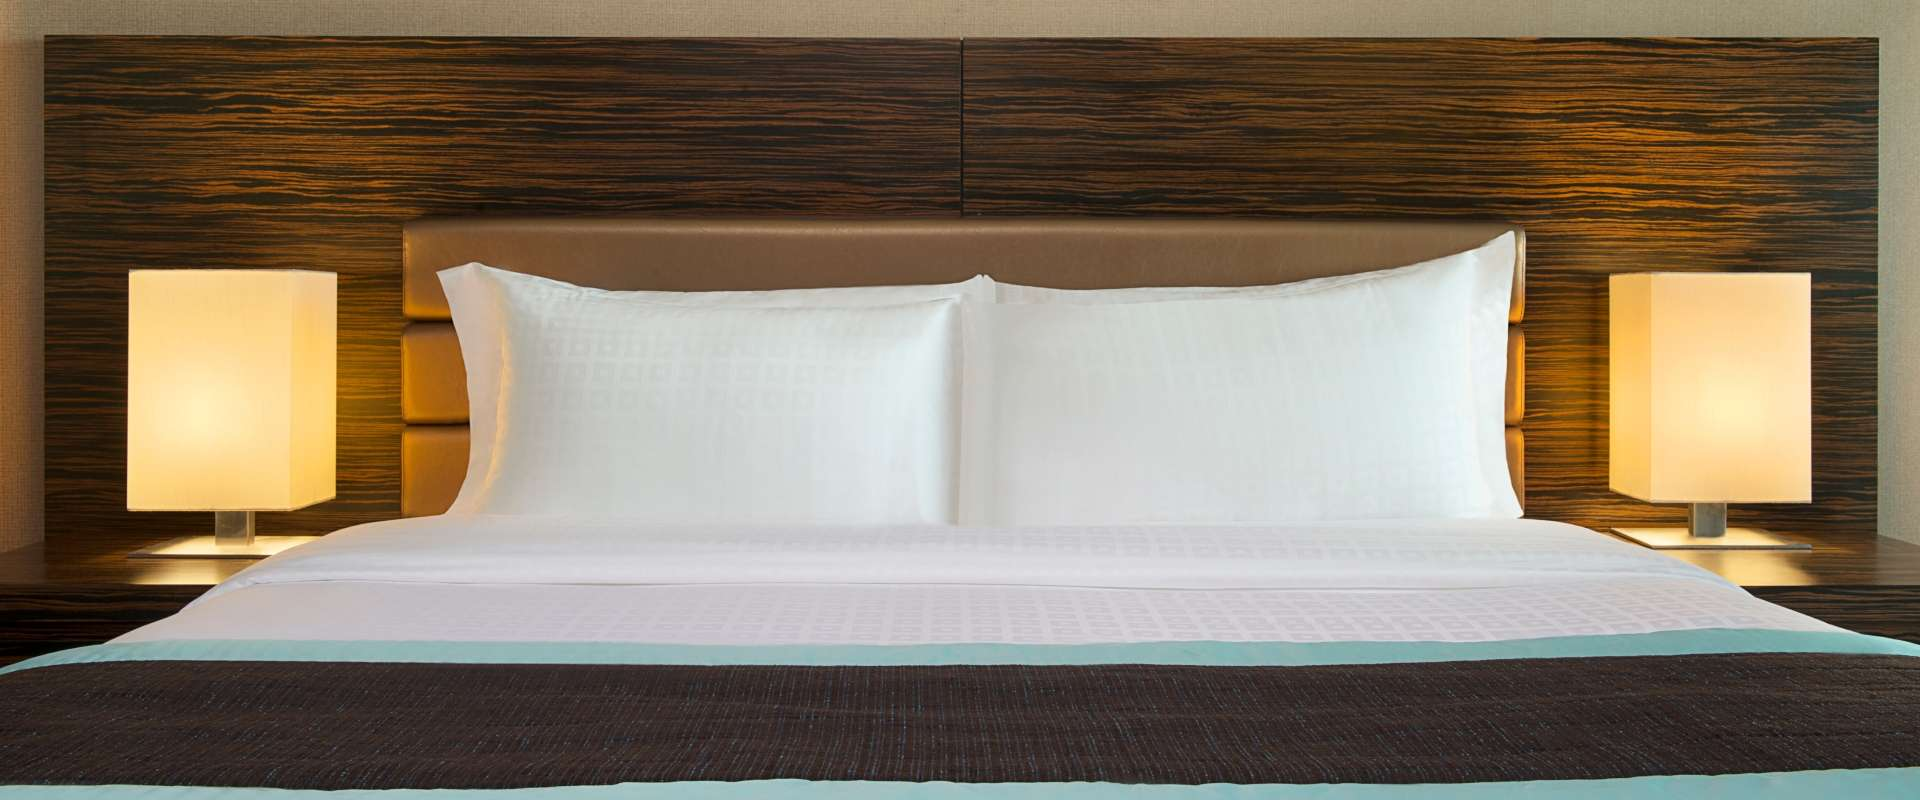 King_Bed_Detail_(1)2.jpg